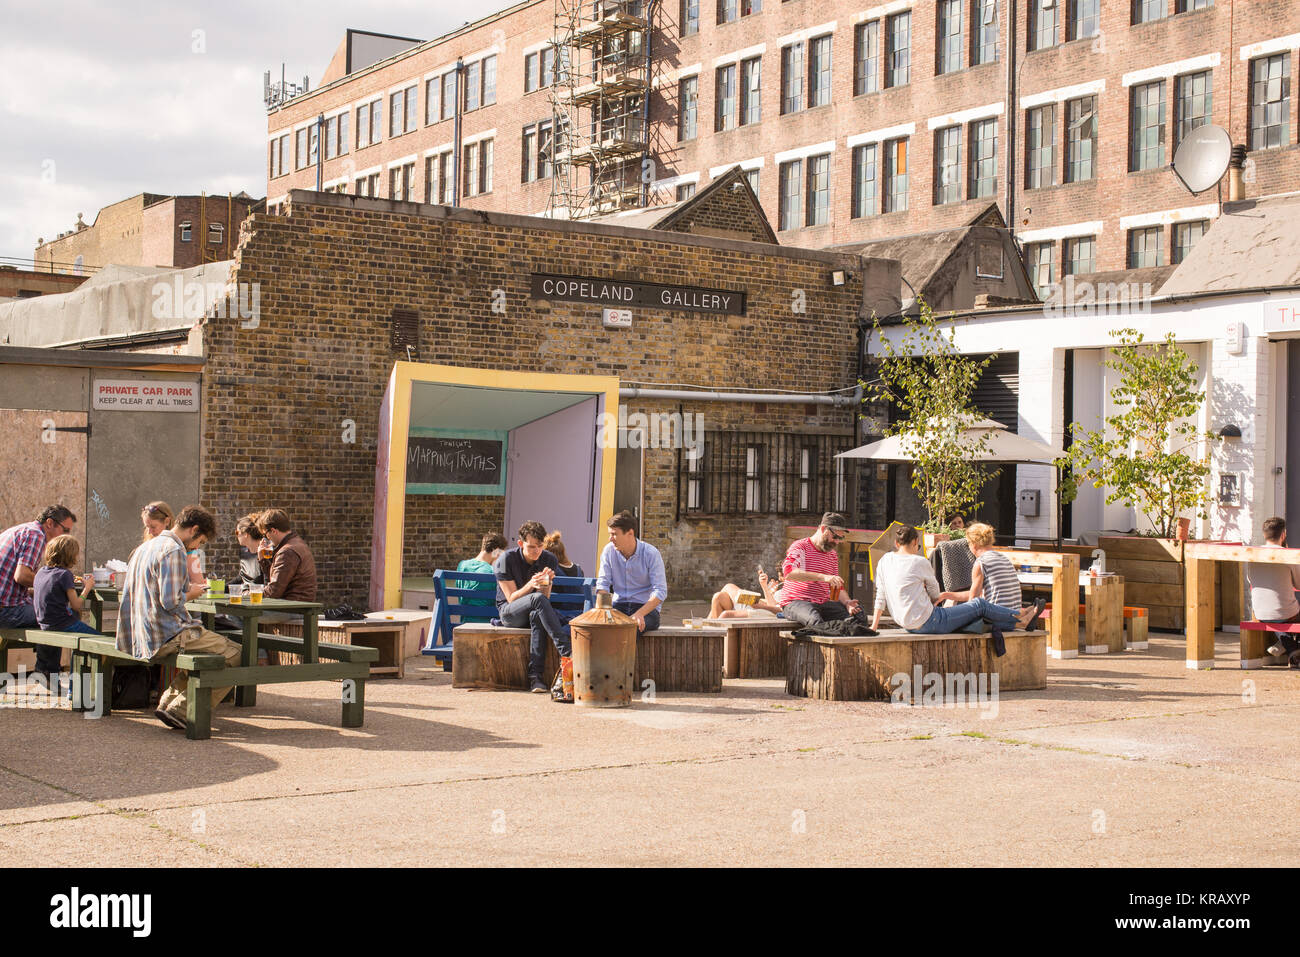 Outdoor stalls hipster cafe with people enjoying the summer at the alternative indie famous venue the Copeland Gallery - Stock Image